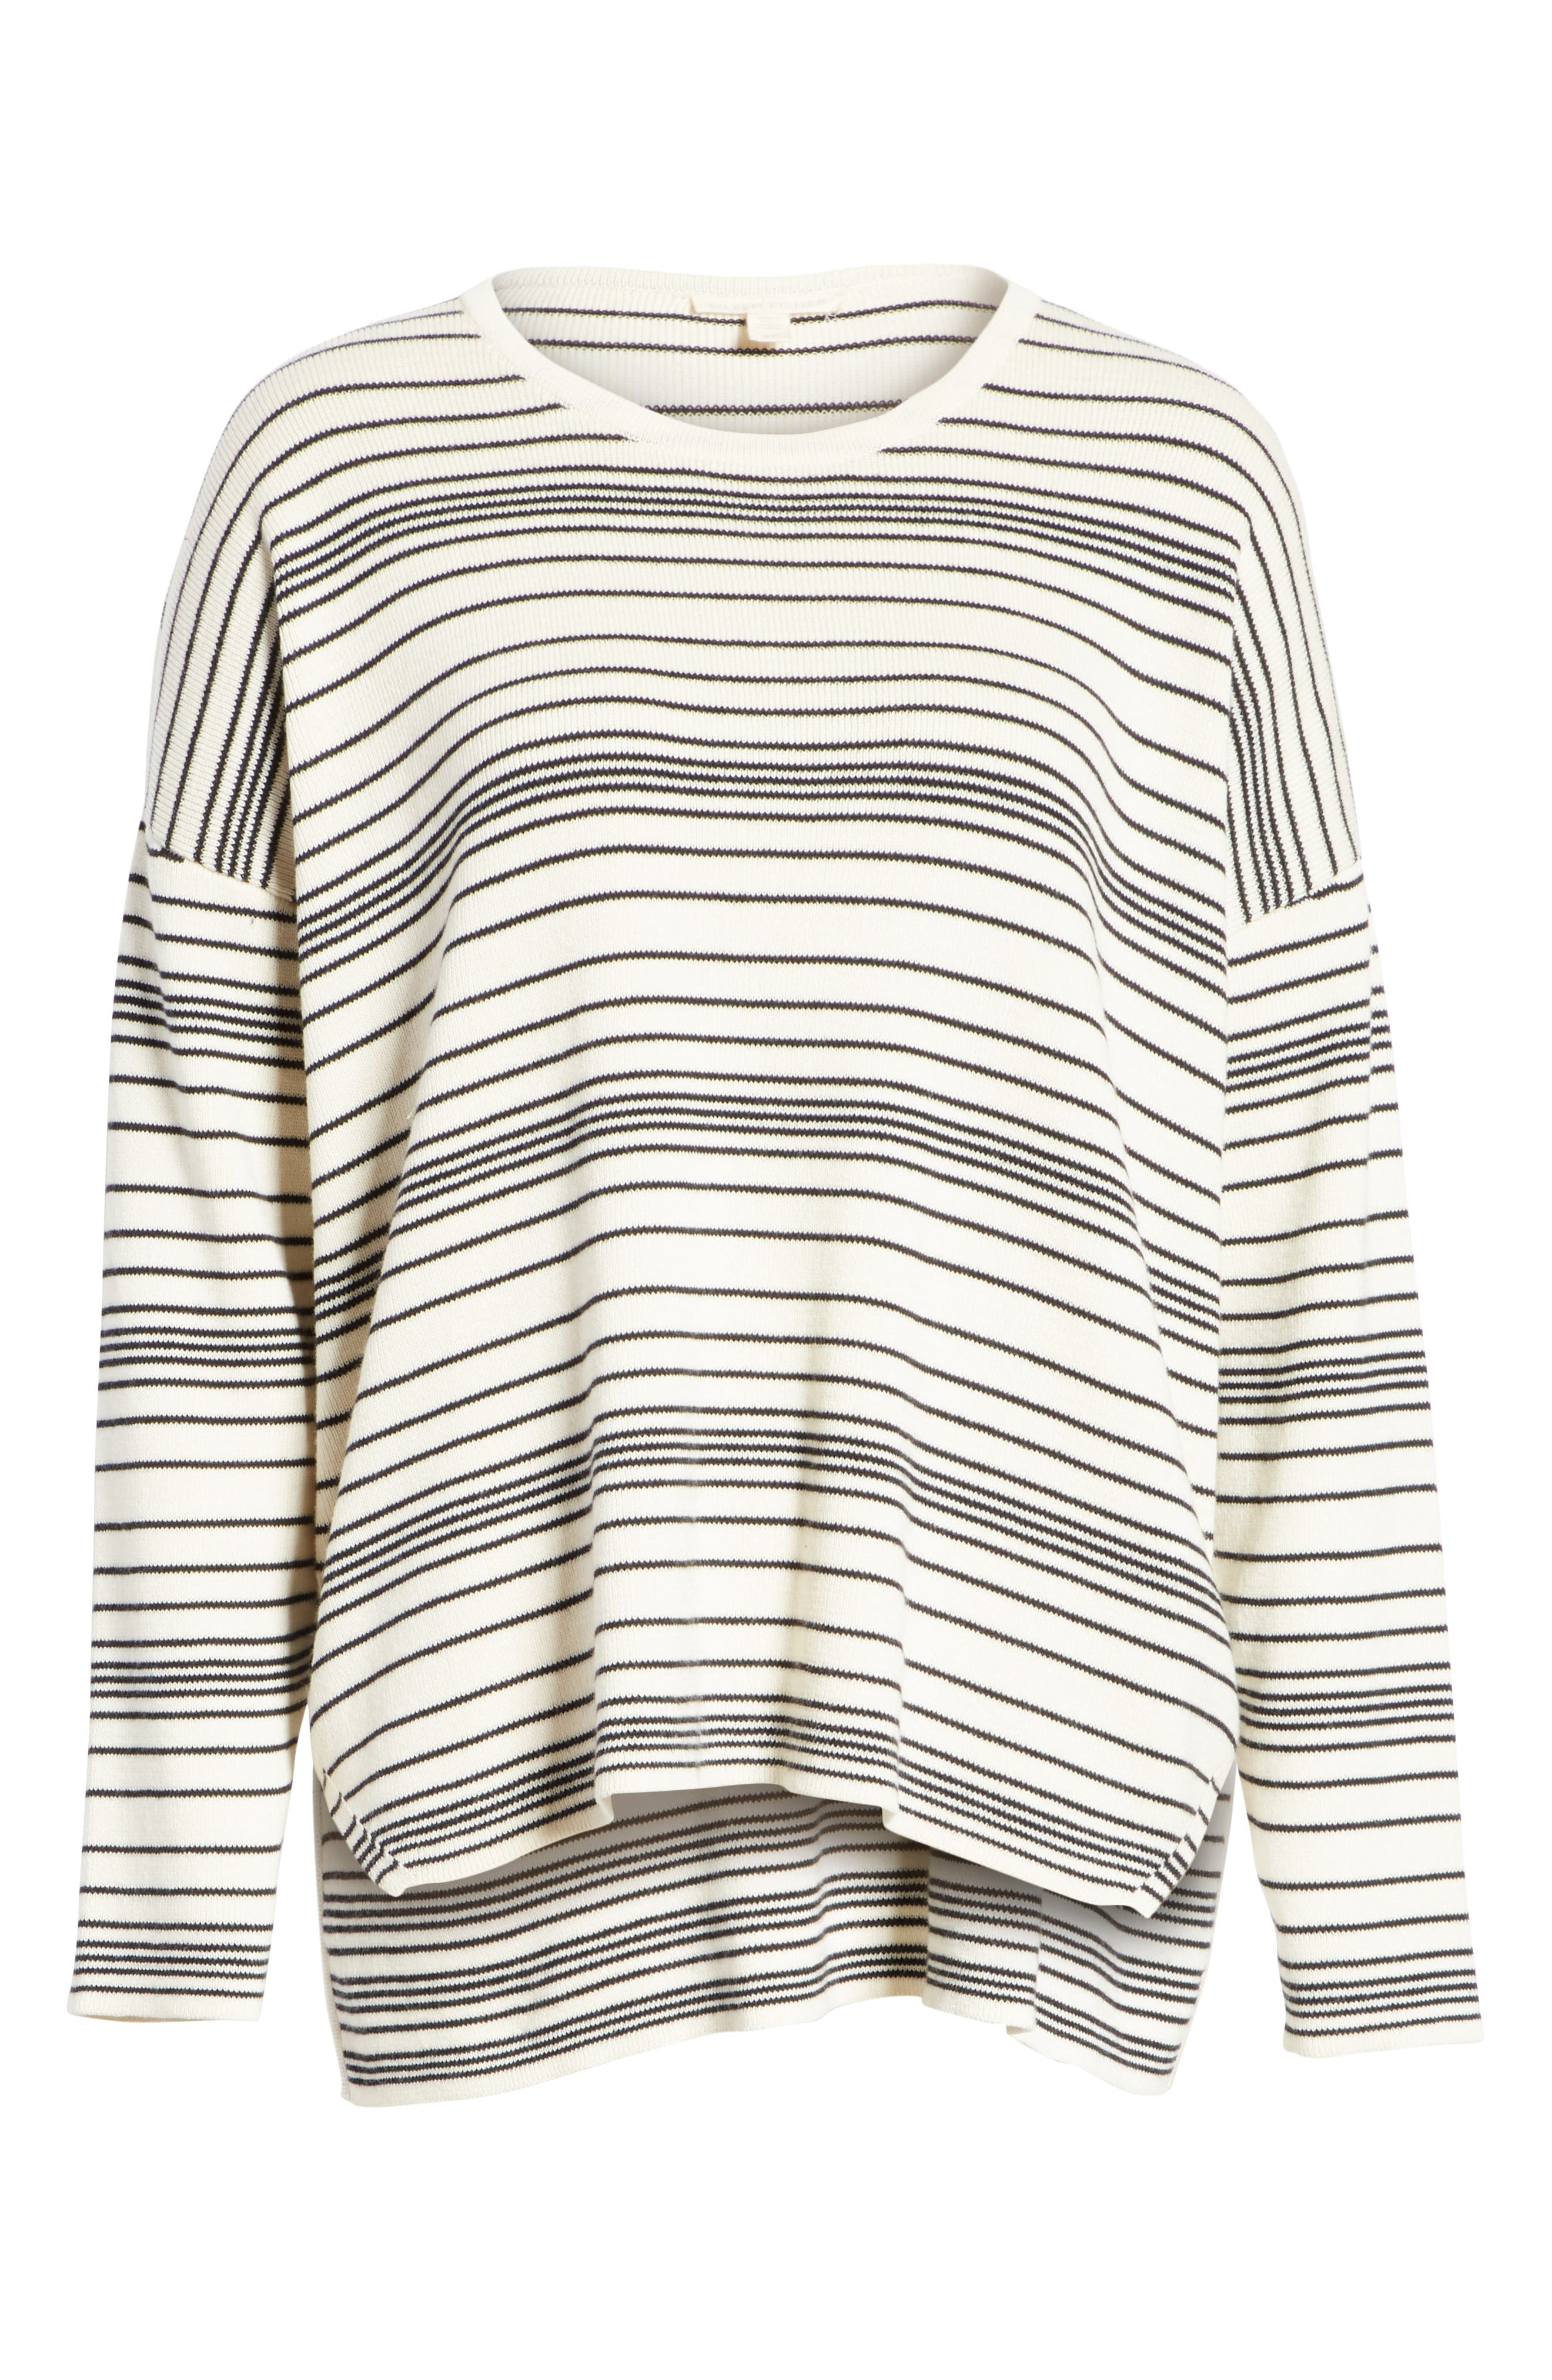 Stripe Organic Cotton Sweater,                             Alternate thumbnail 6, color,                             SOFT WHITE/ BLACK